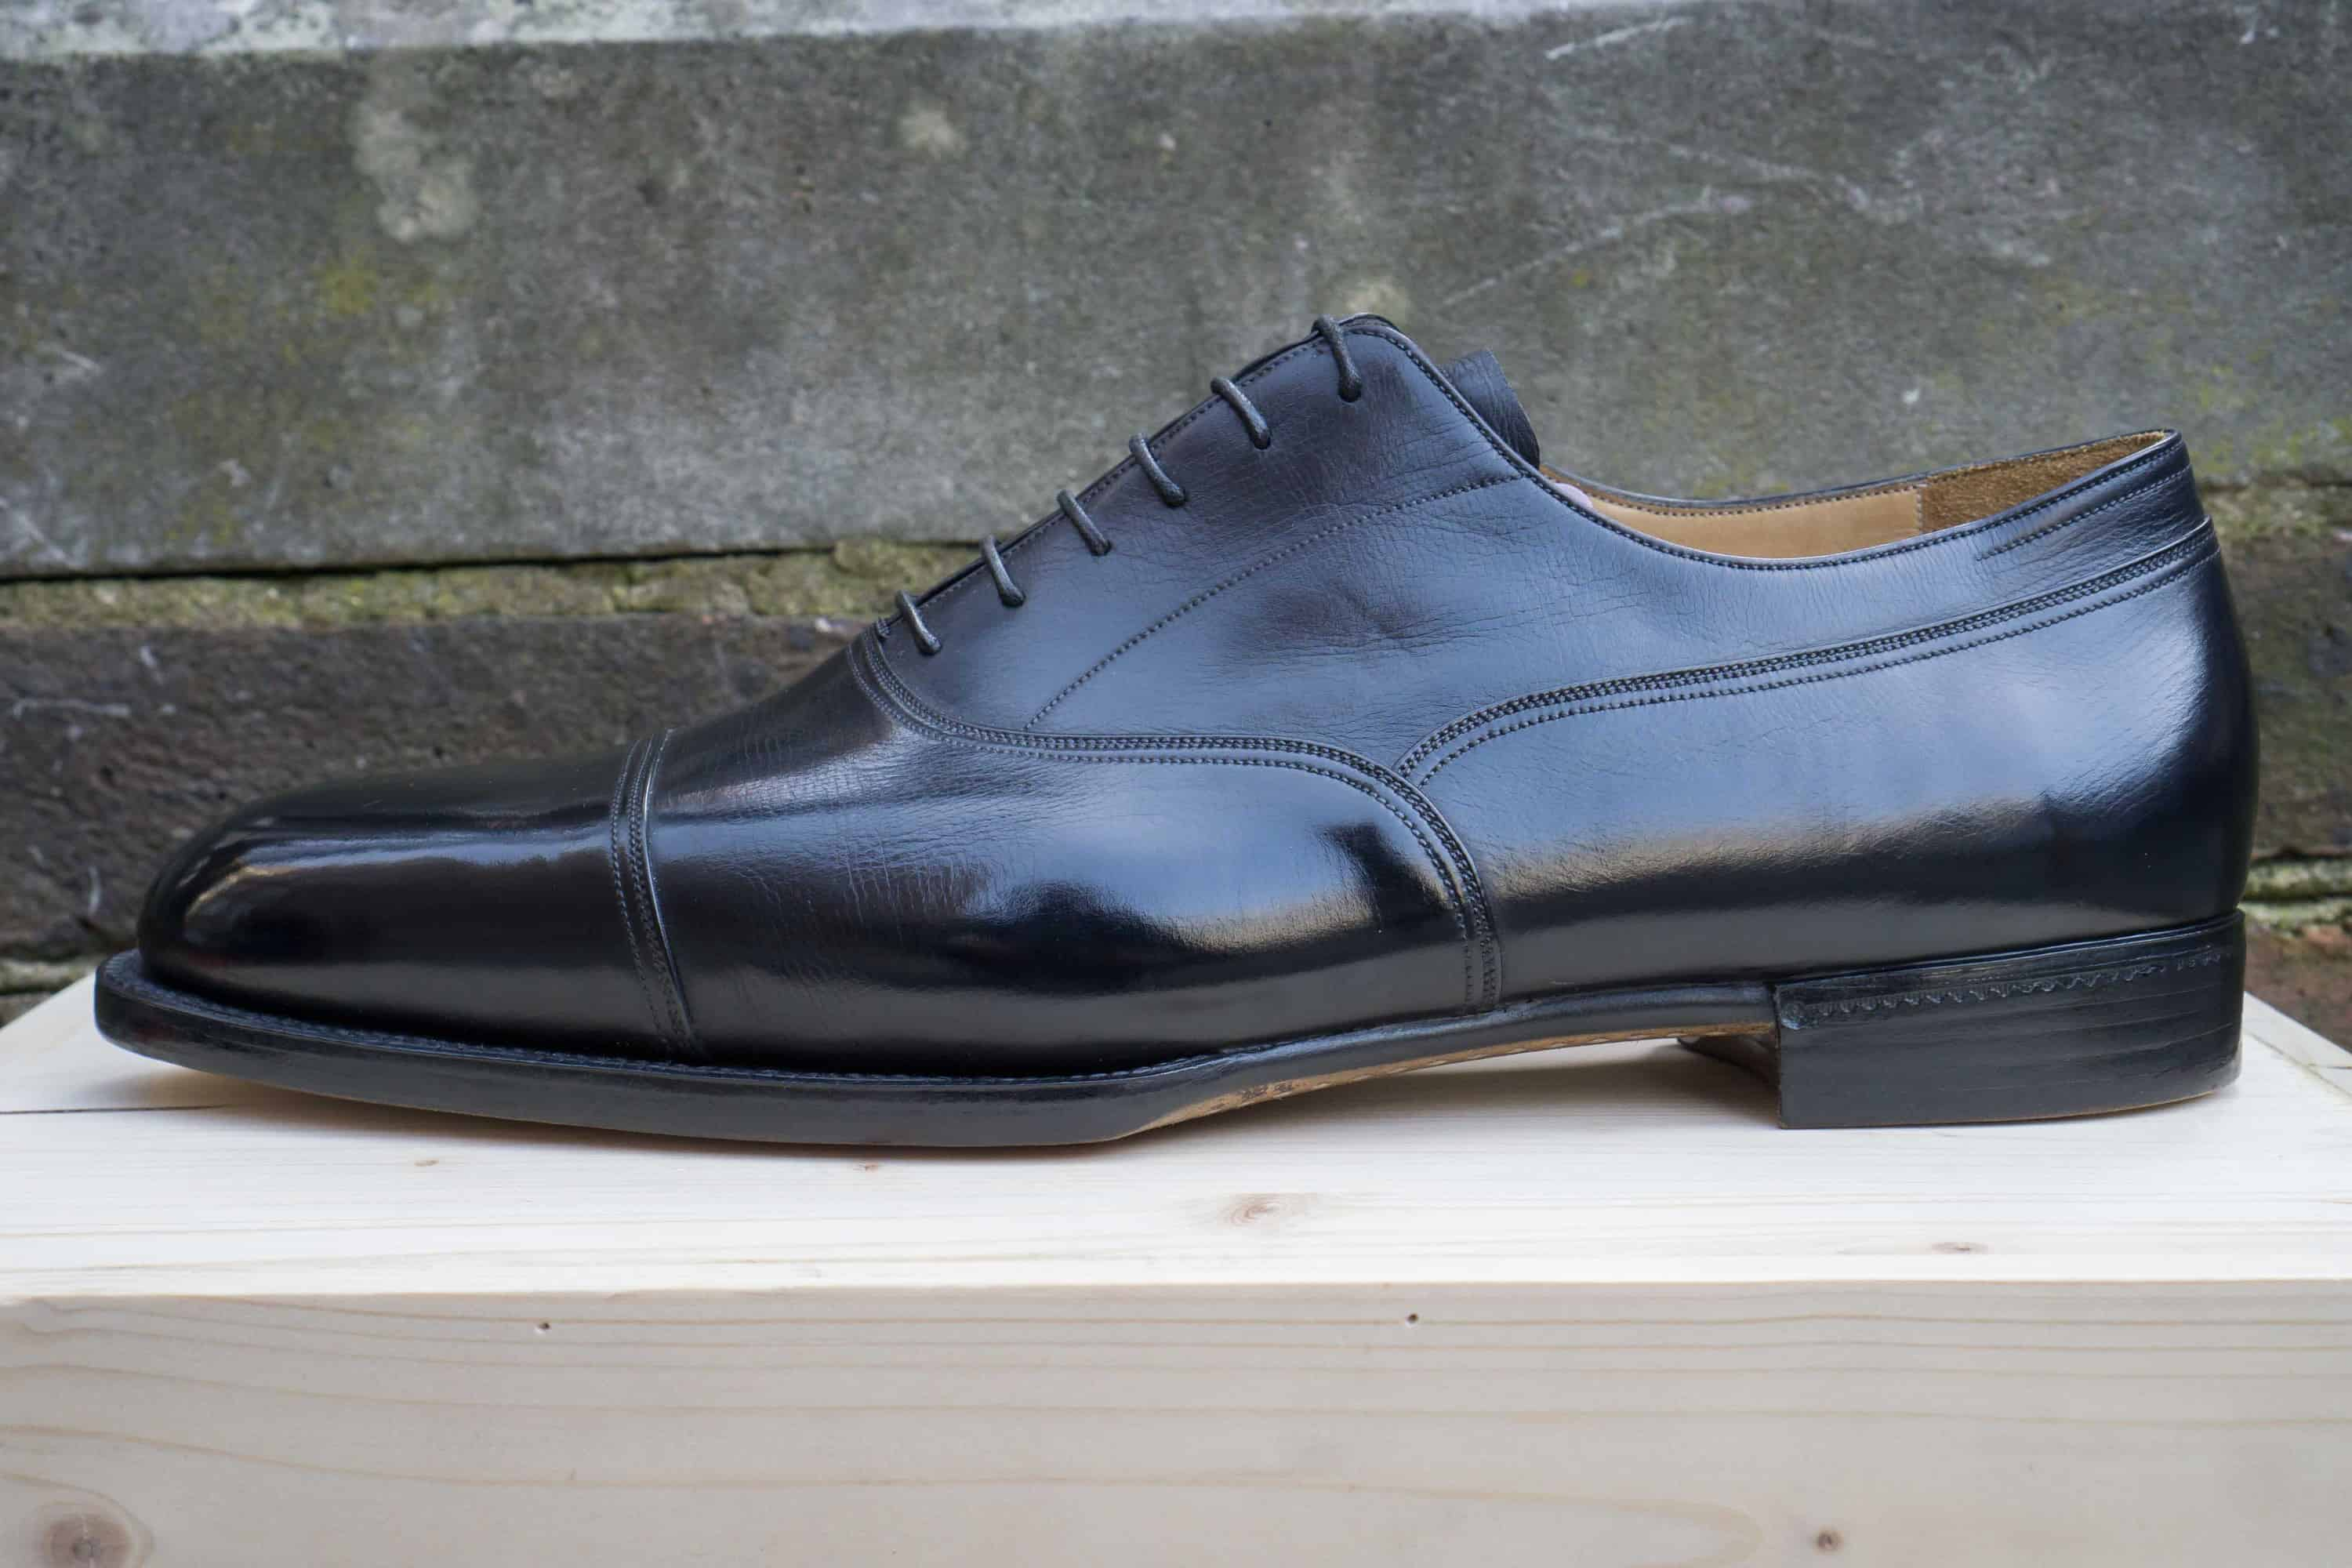 World Championships in Shoemaking The Competition's Shoe Entries Part 1